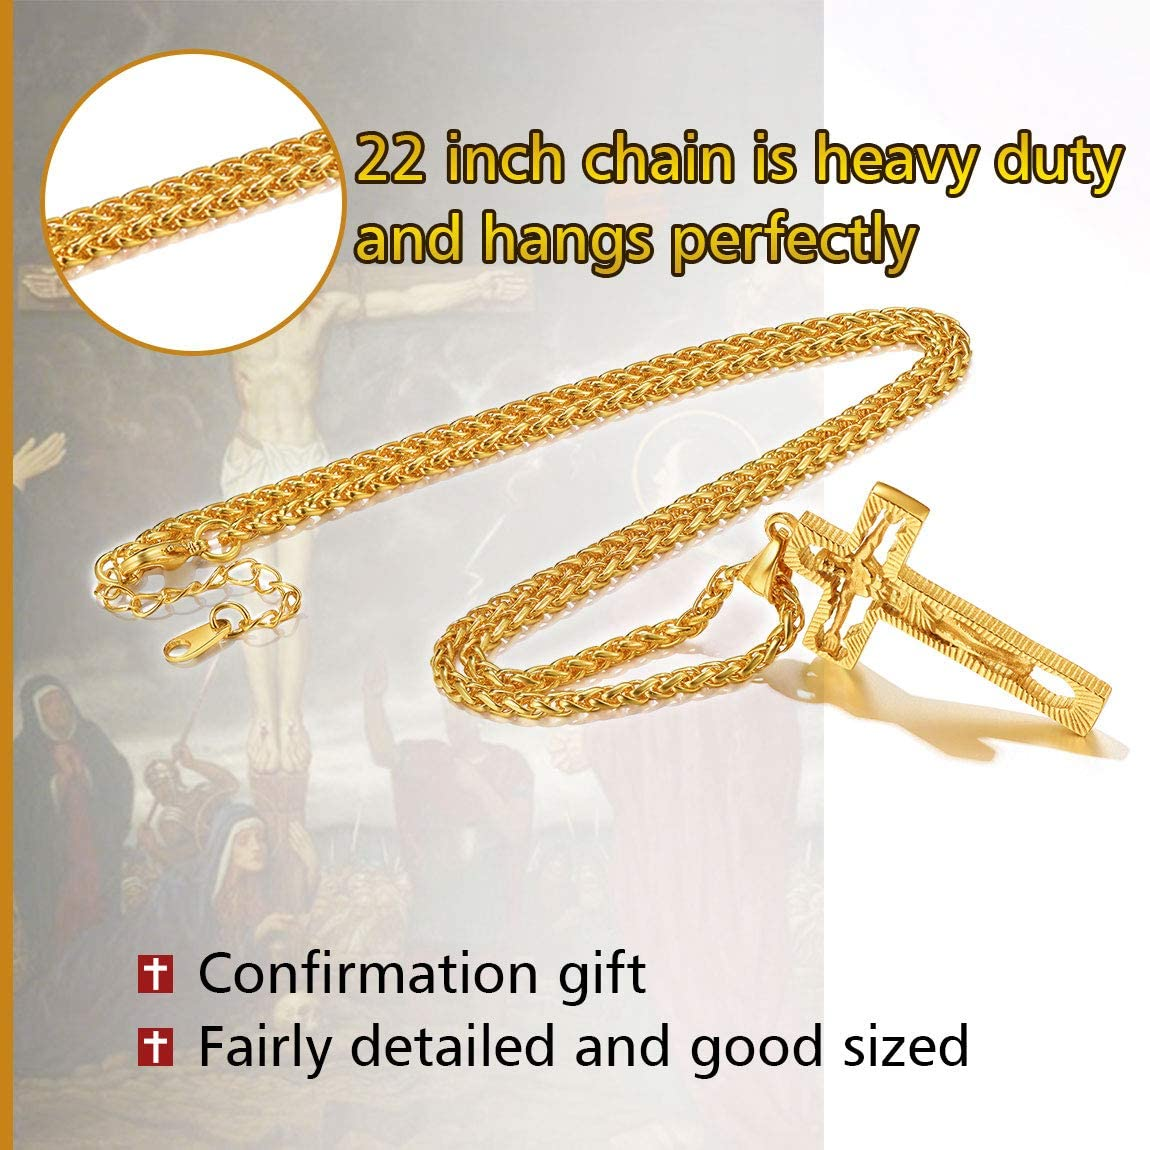 Crucifix Cross Necklace for Men 316L Stainless Steel//18K Gold Plated ChainsPro Can Engrave Send Gift Box